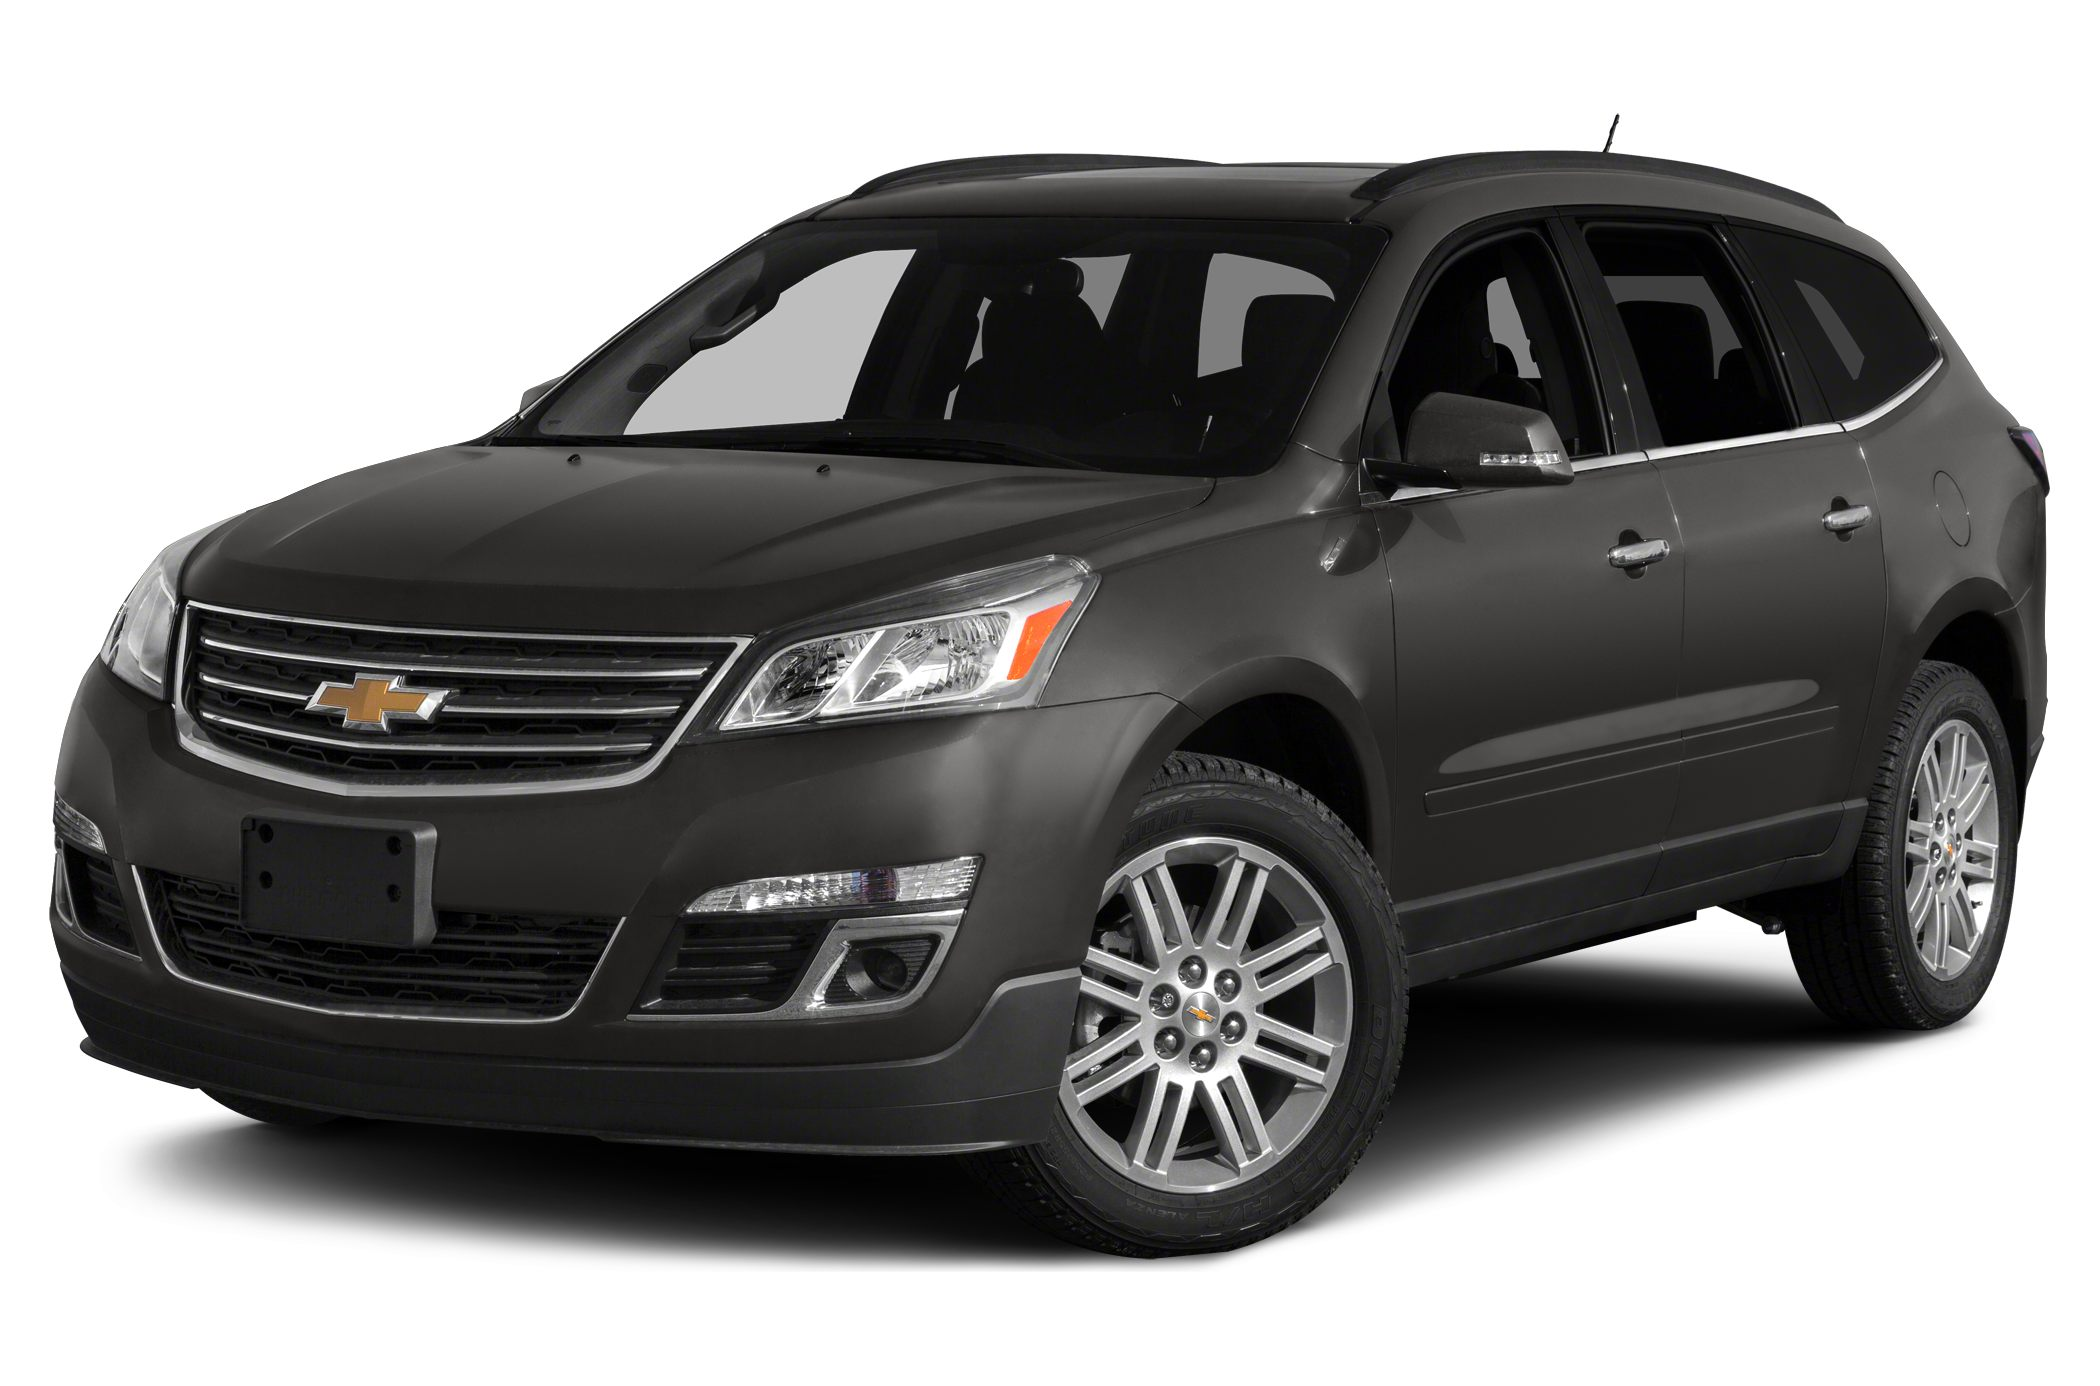 2015 Chevrolet Traverse LS SUV for sale in Daphne for $32,240 with 8 miles